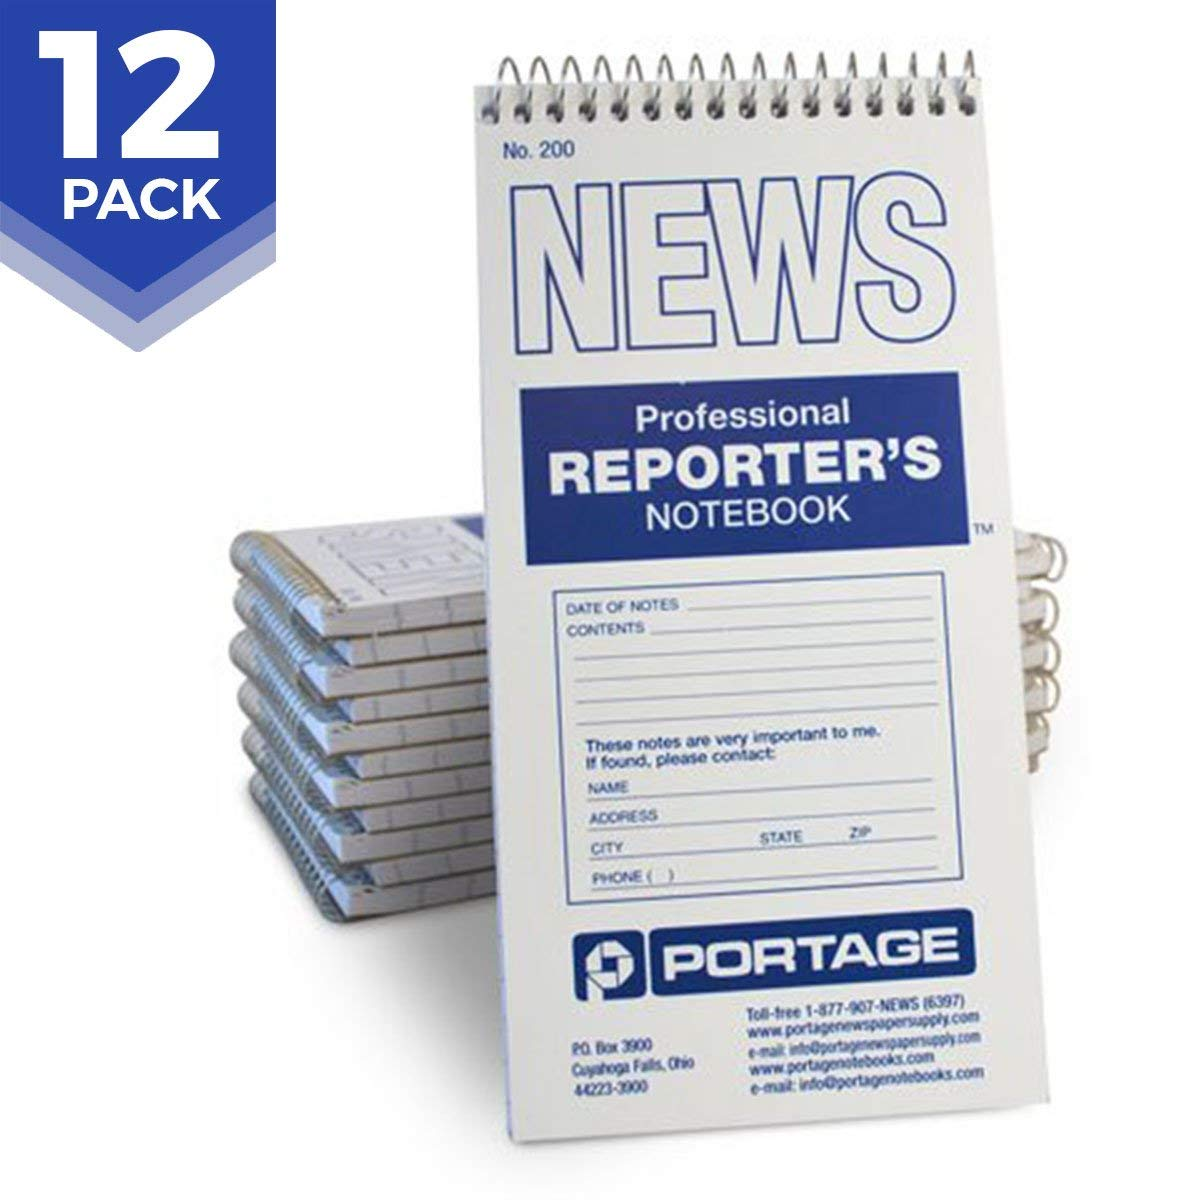 Portage Reporter's Notebook - #200 Gregg Ruled 4'' x 8'' Professional Spiral Notebook for Taking Notes in the Field - 140 Pages (12 Pack) by Portage